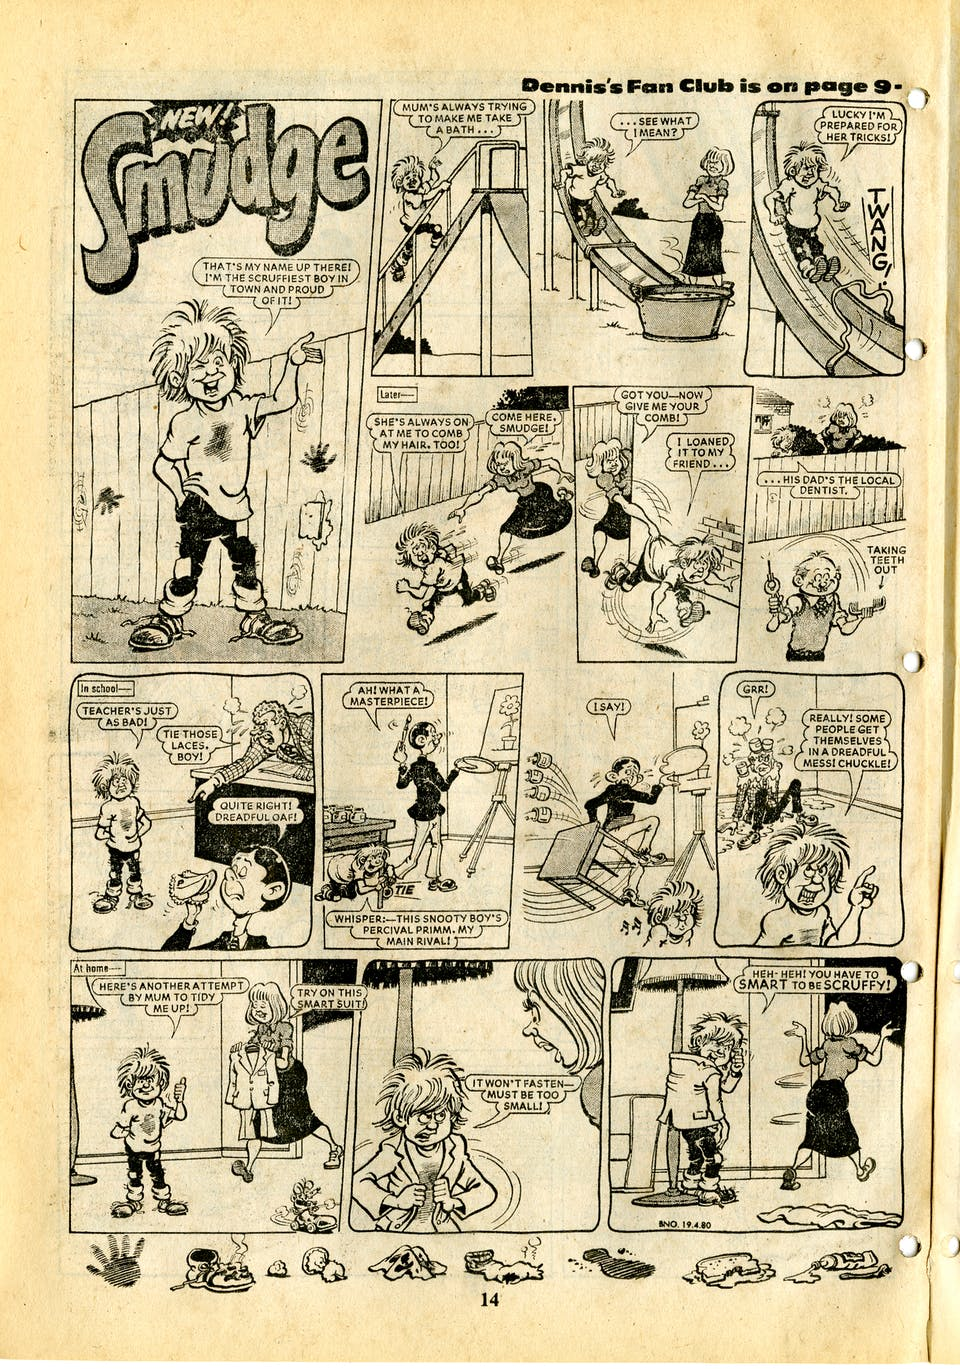 Smudge No. 1 - 19th April 1980 - Full Page